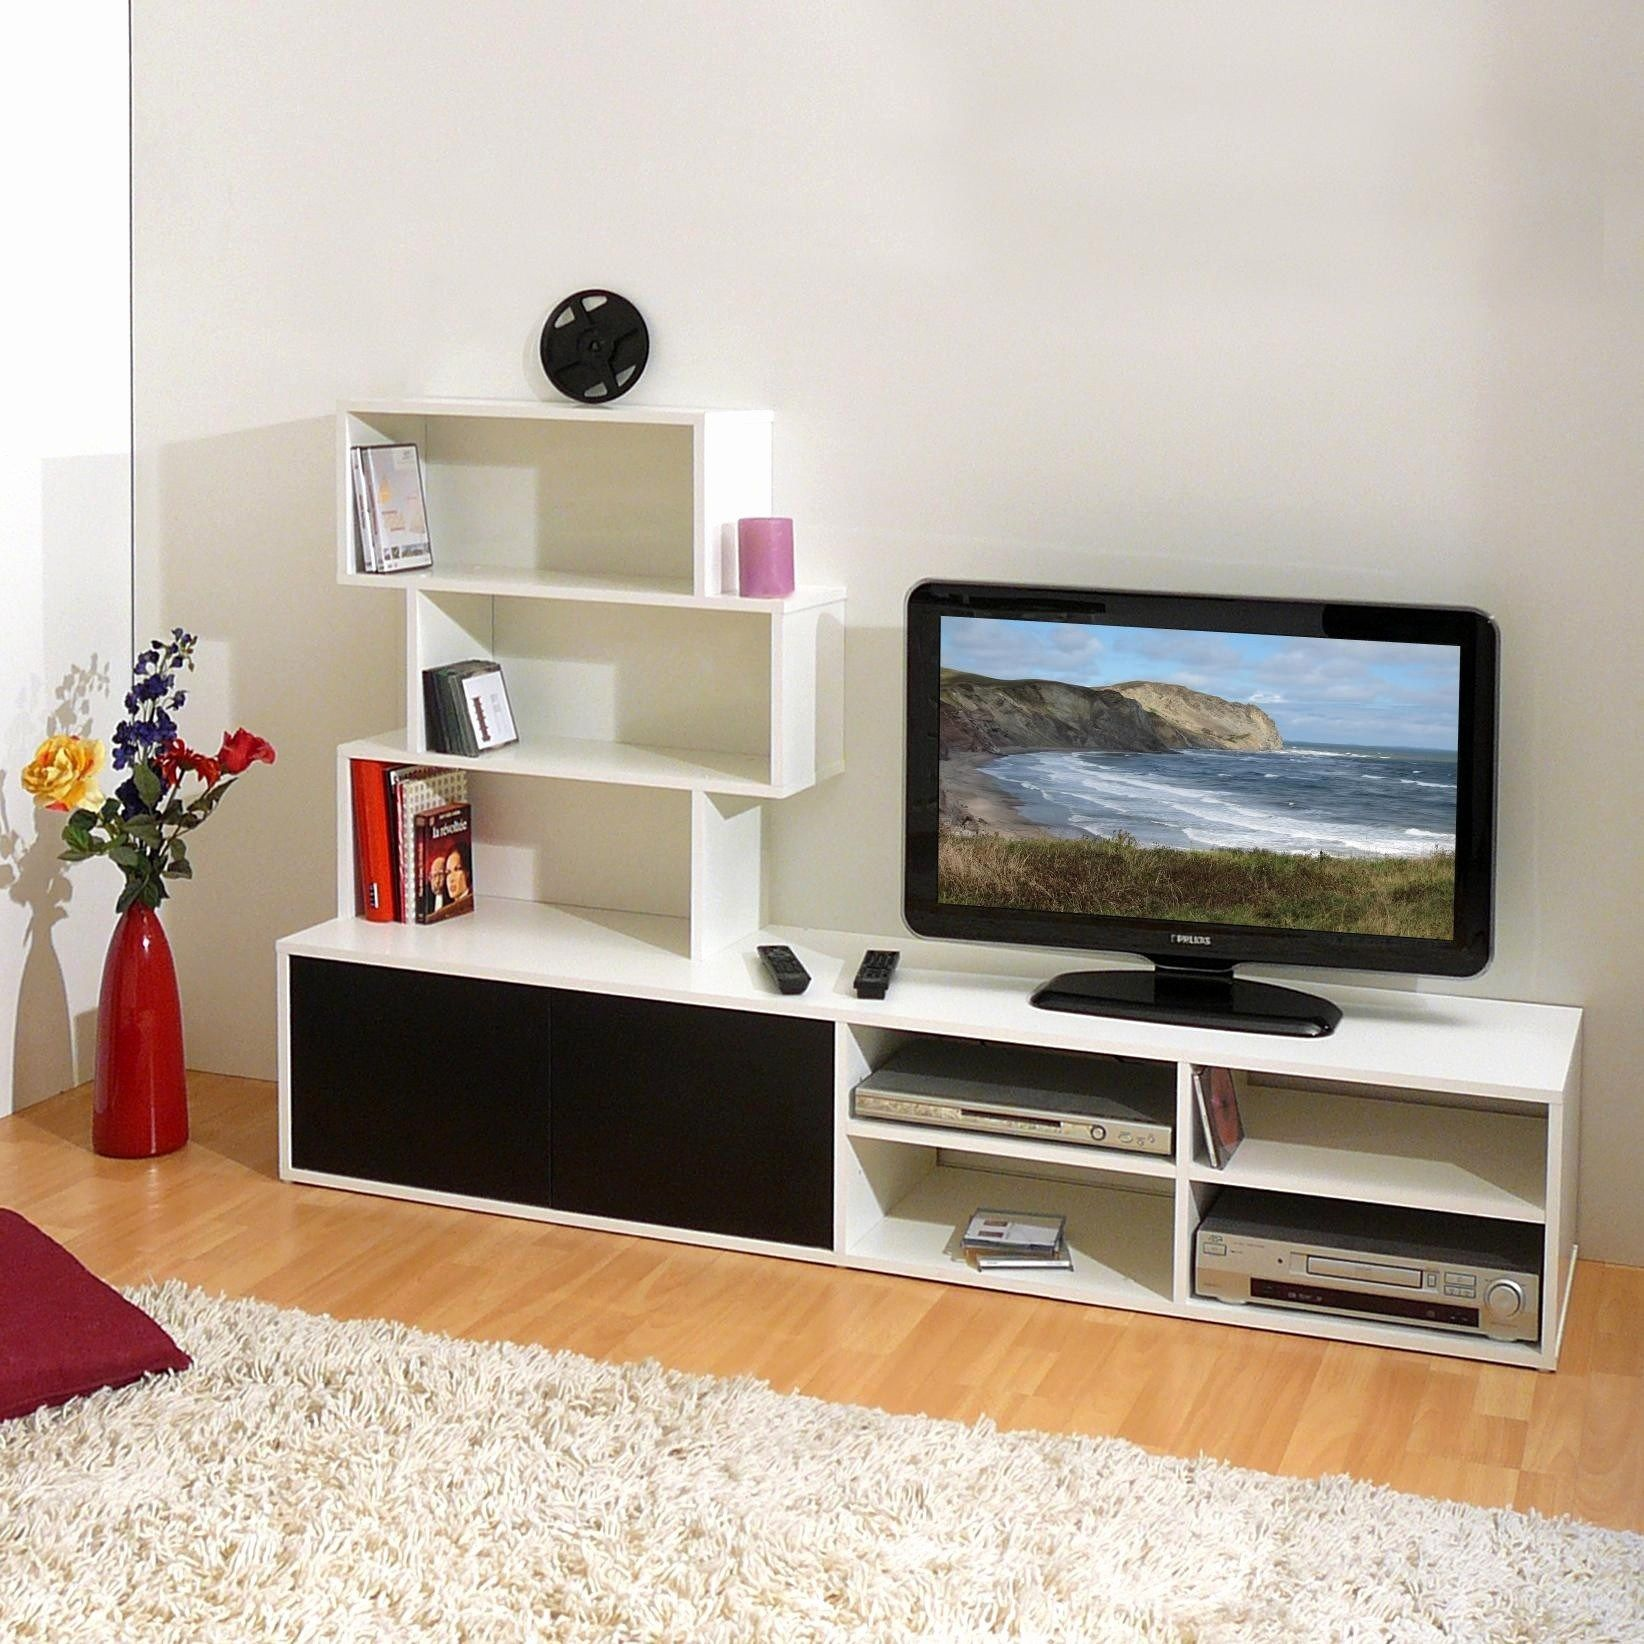 Best Of Television Chez Conforama Television Tables Home Decor